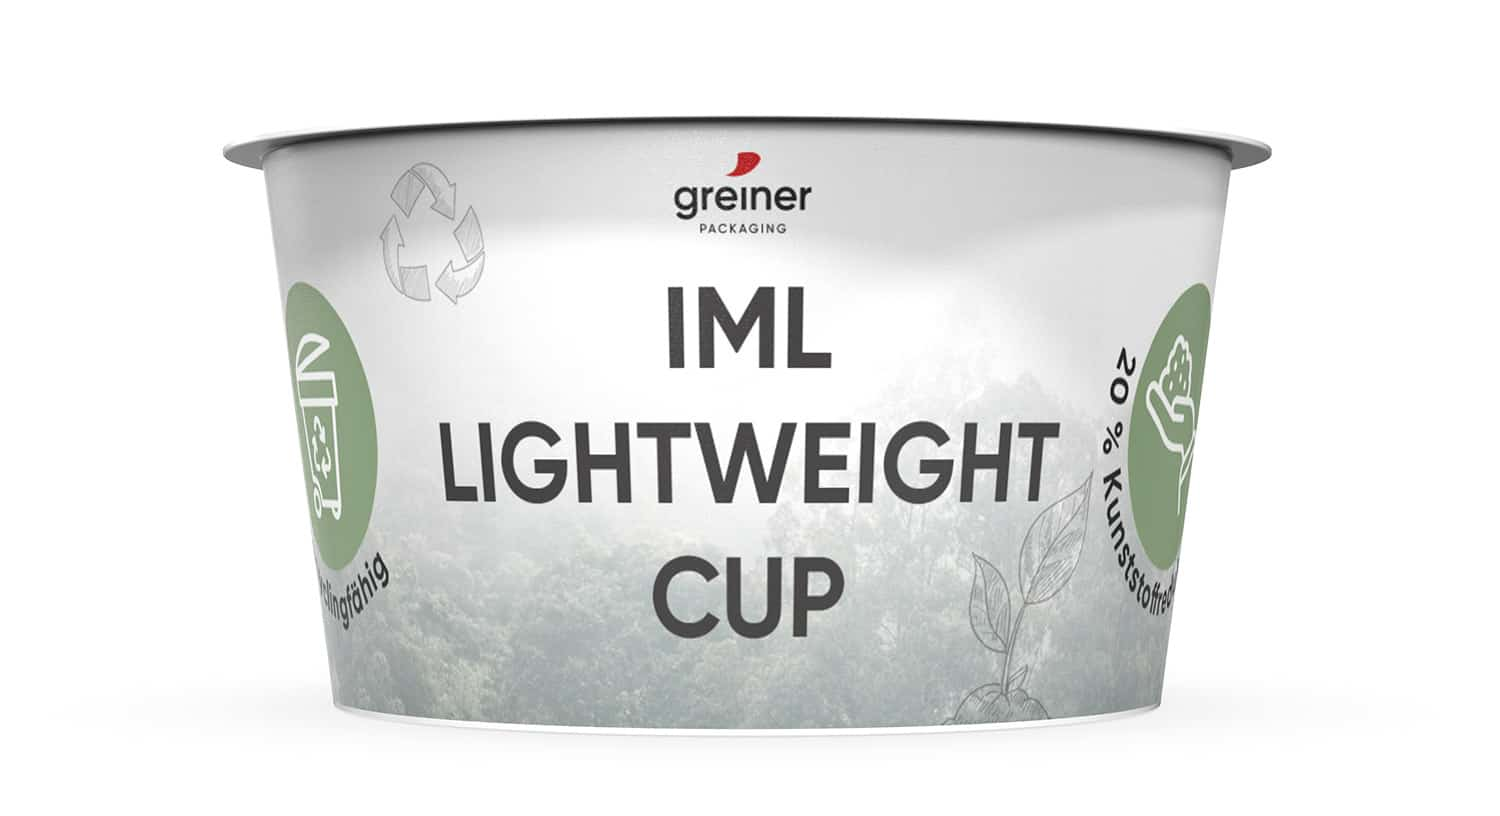 IML lightweight cup by Greiner Packaging